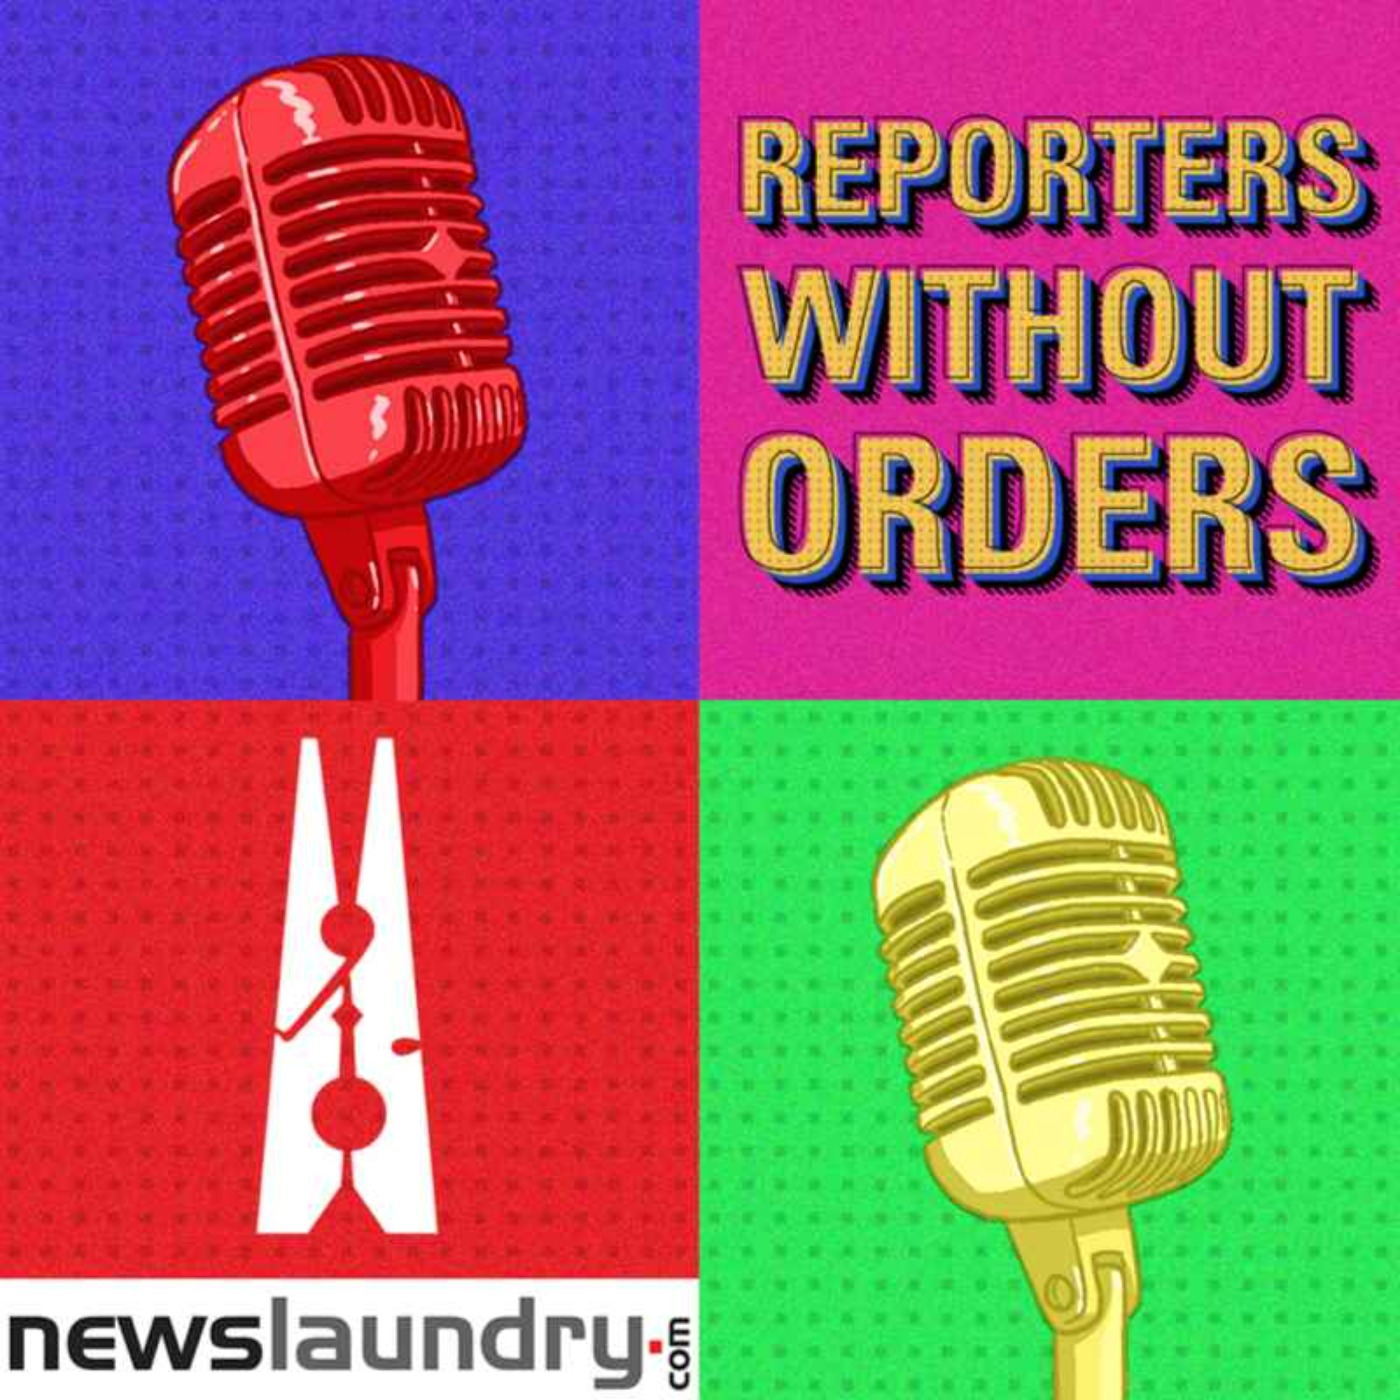 Reporters Without Orders Ep 169: Six months of farmer protests and rural UP's dubious Covid data